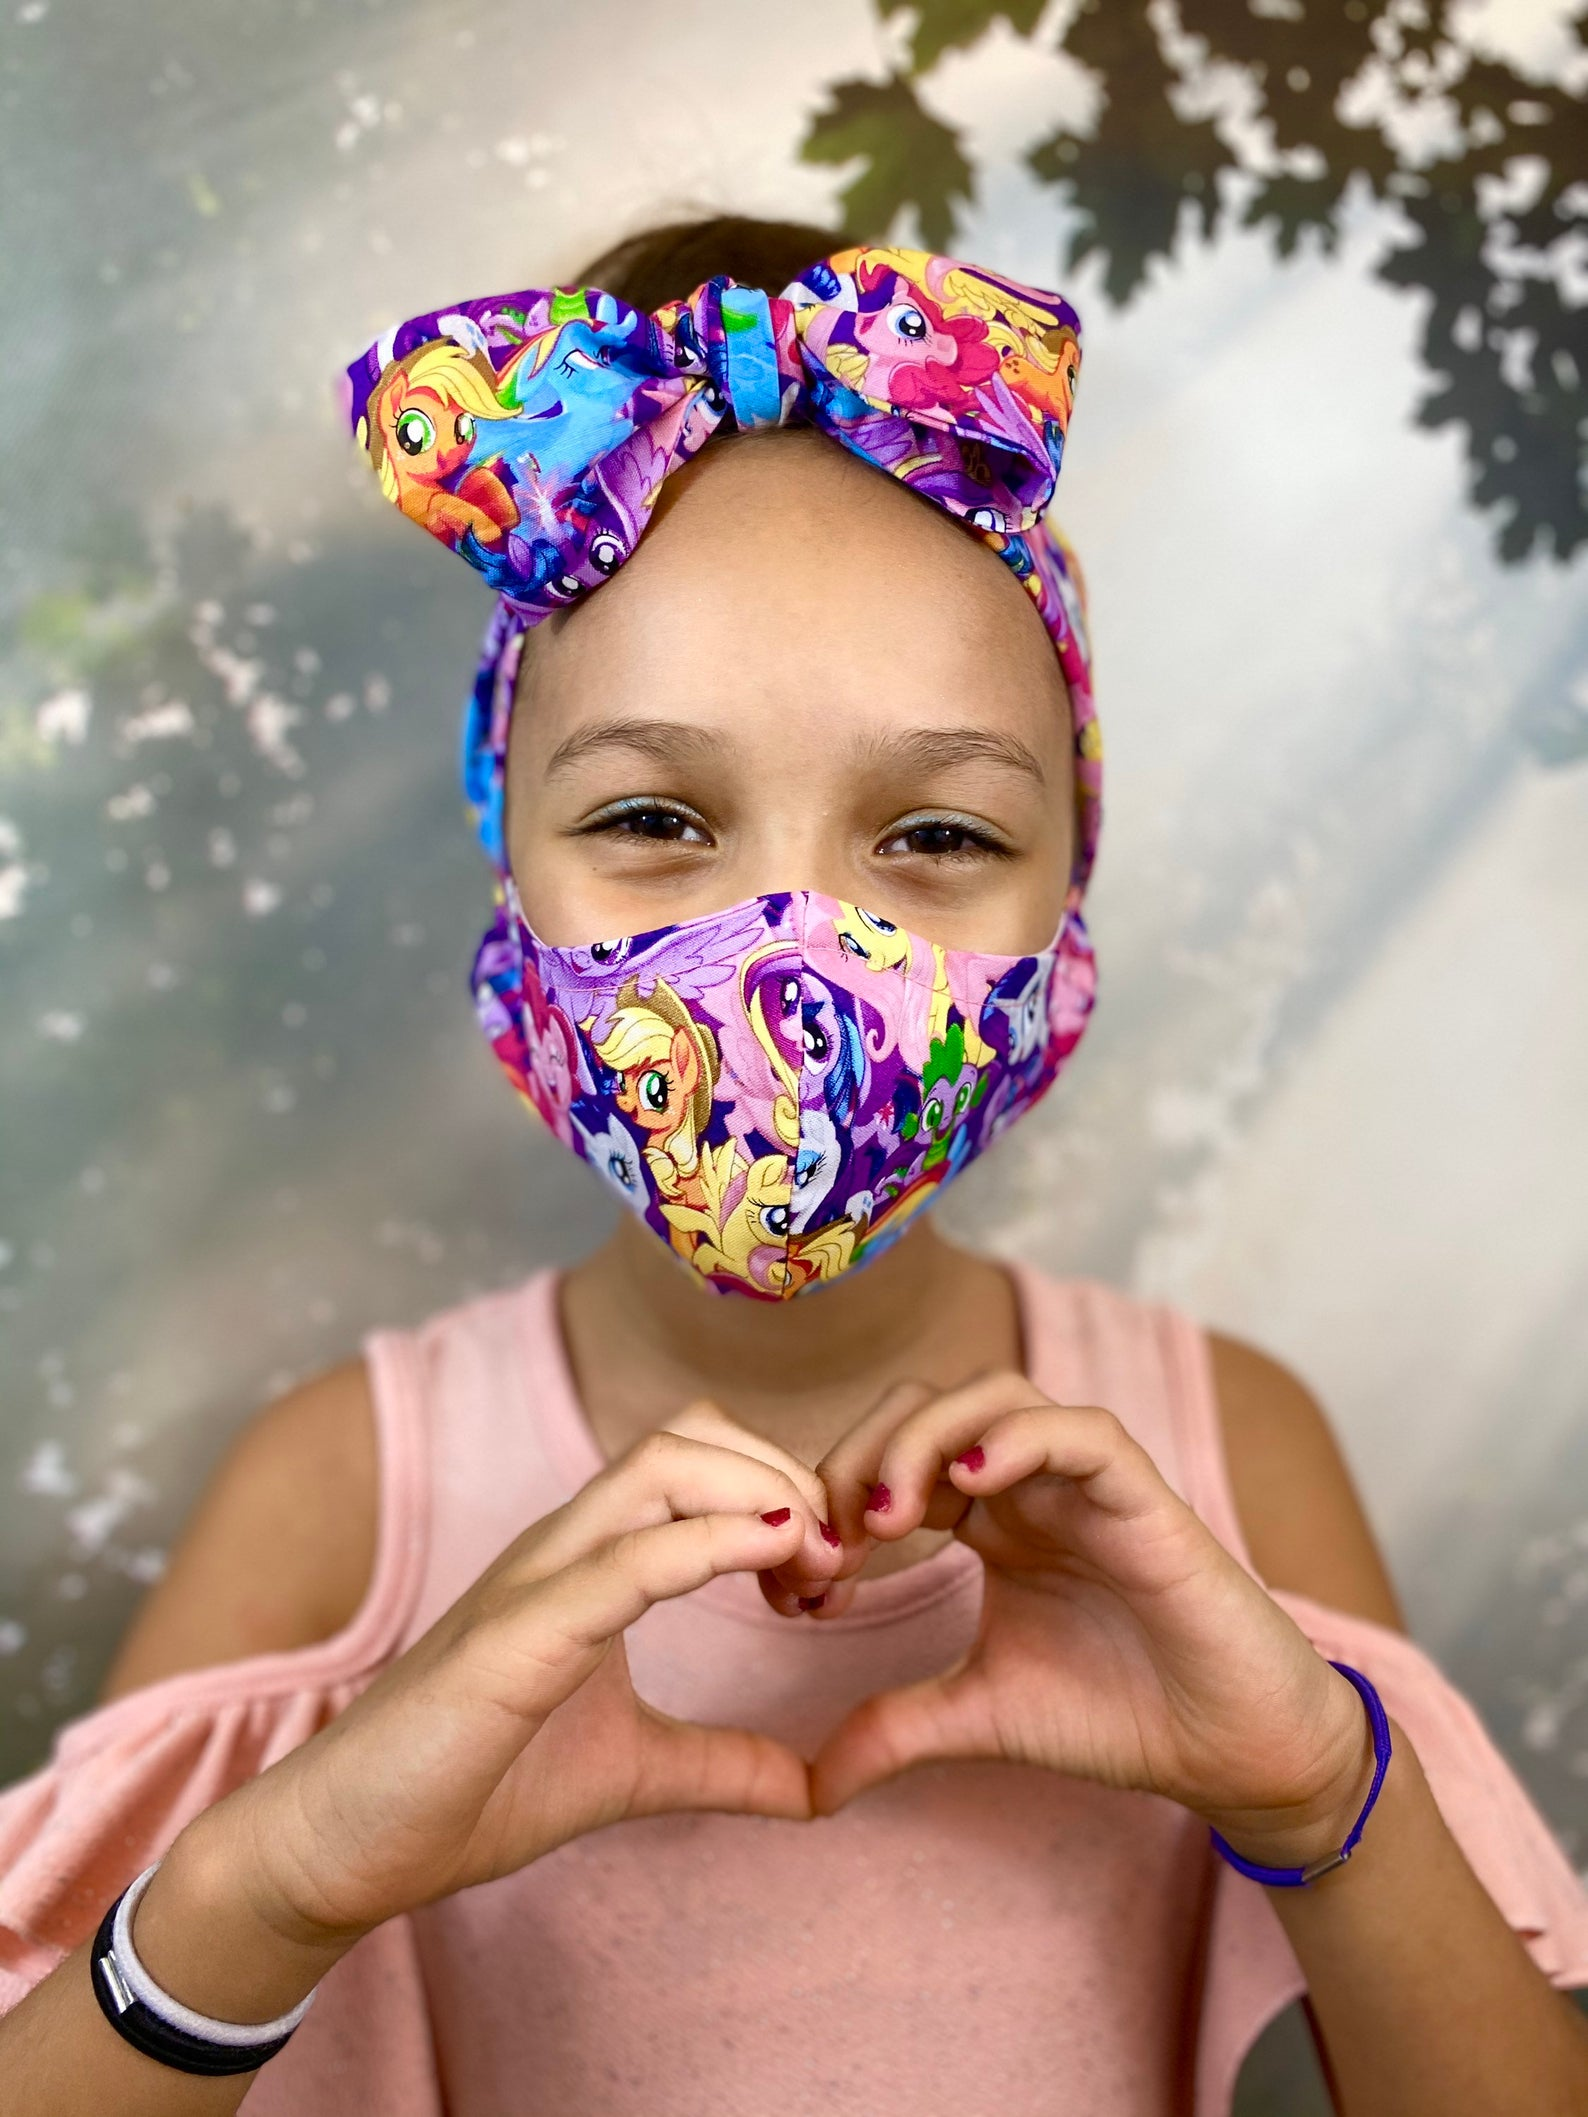 Cool face mask accessories for kids: A matching headband that's super fun is even more motivation to keep your mask on.